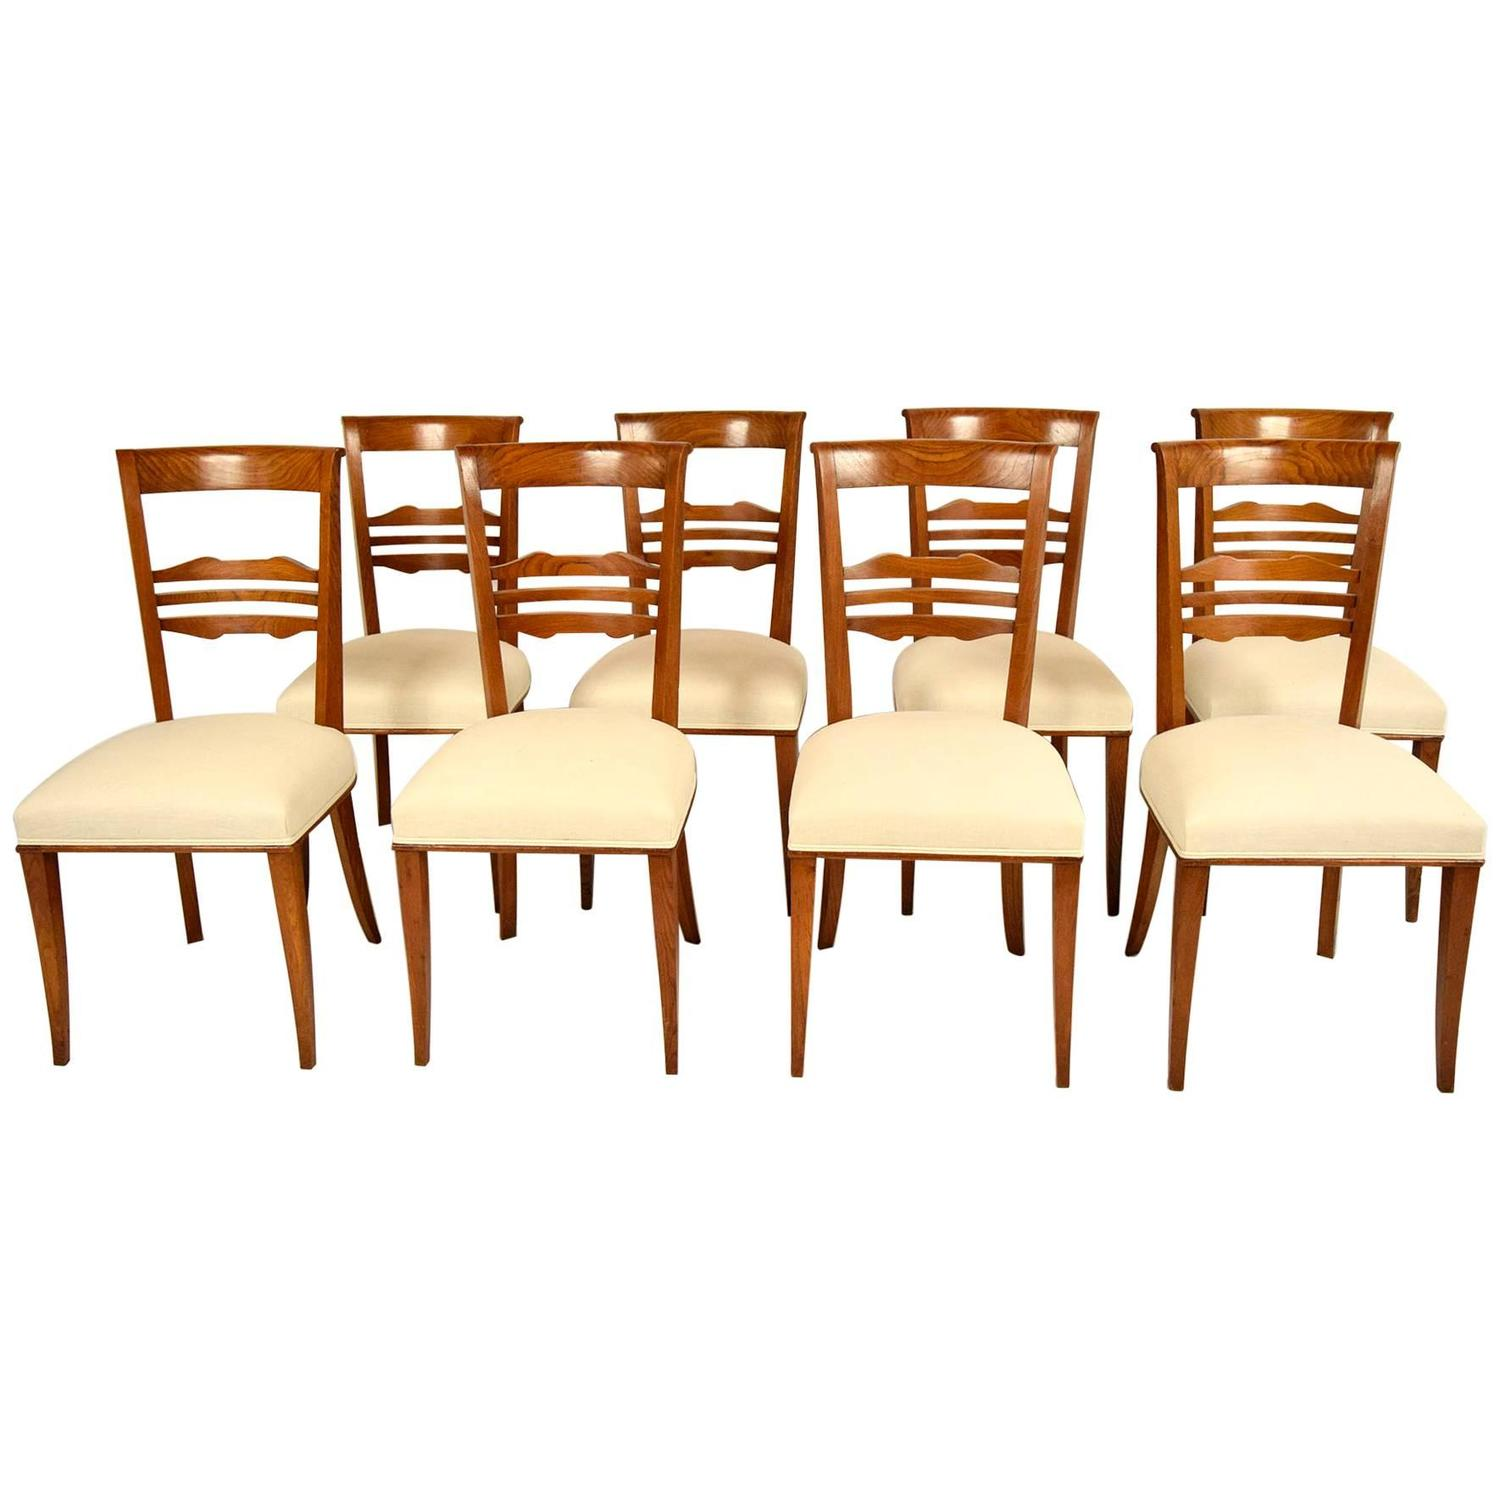 Set of eight regency style dining chairs at 1stdibs for Regency furniture living room sets